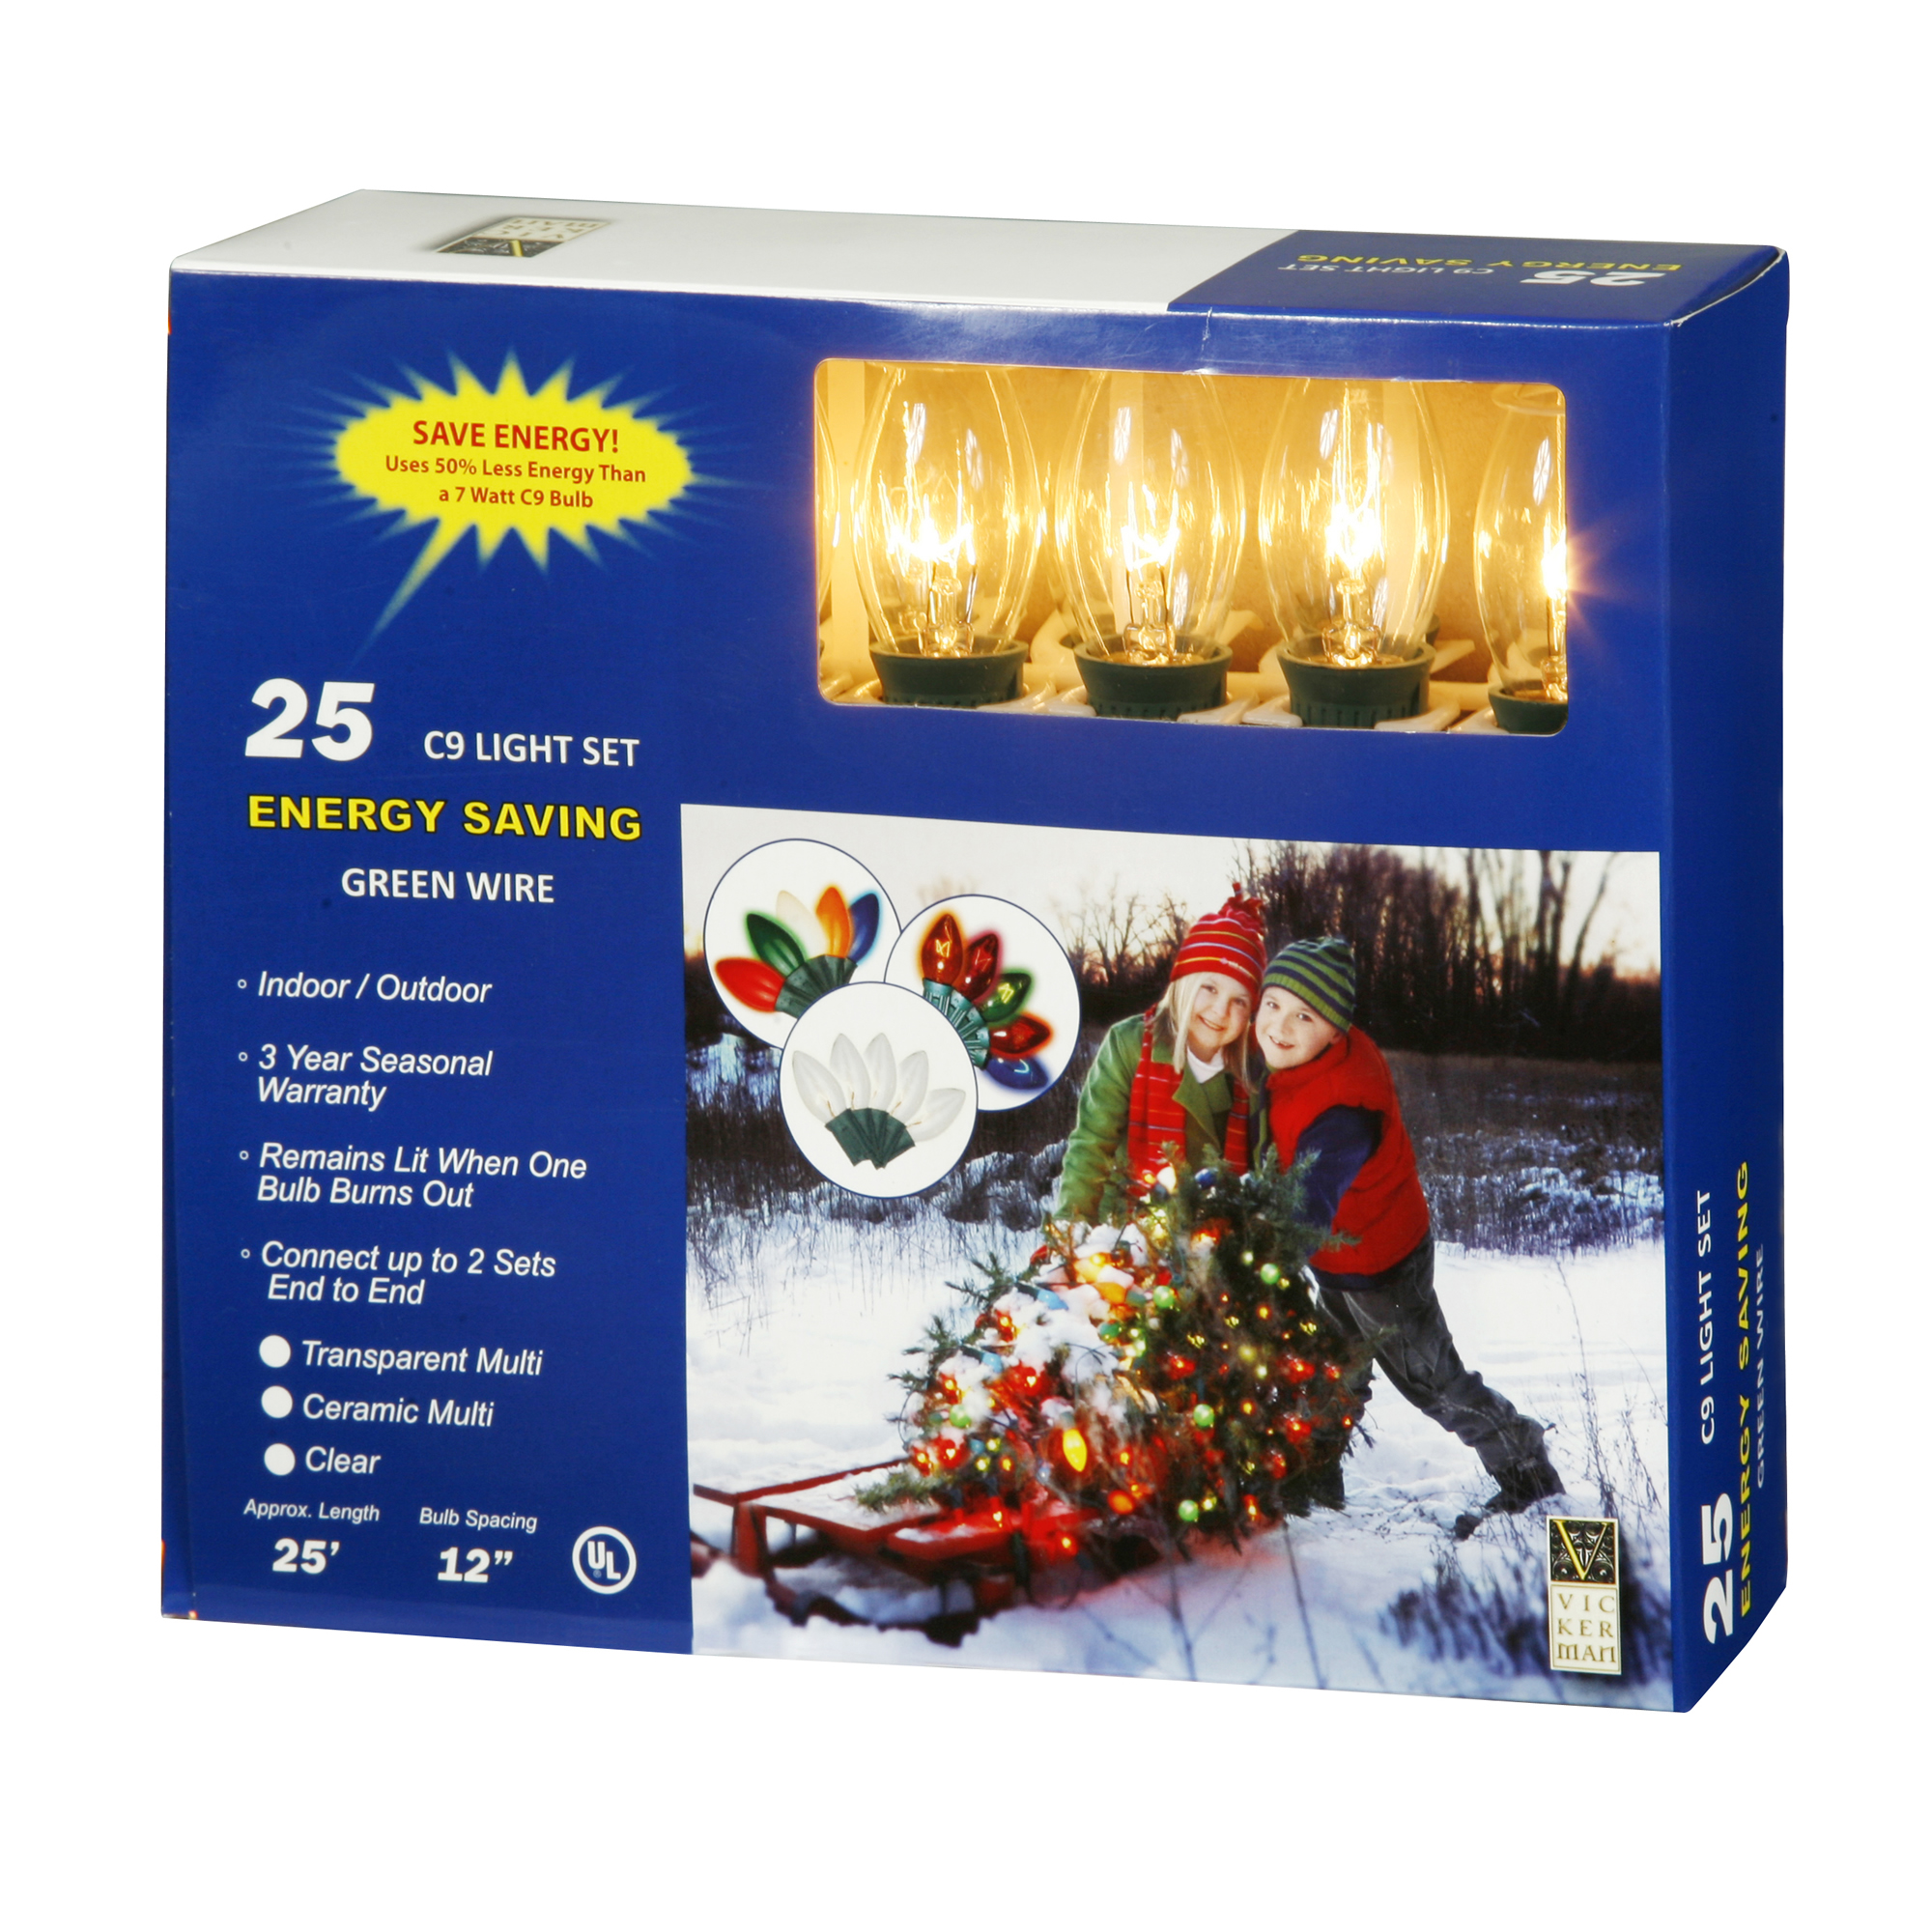 "Vickerman 25 Light C9 Clear End Connecting Set 12"" Bulb Spacing 25' Long"